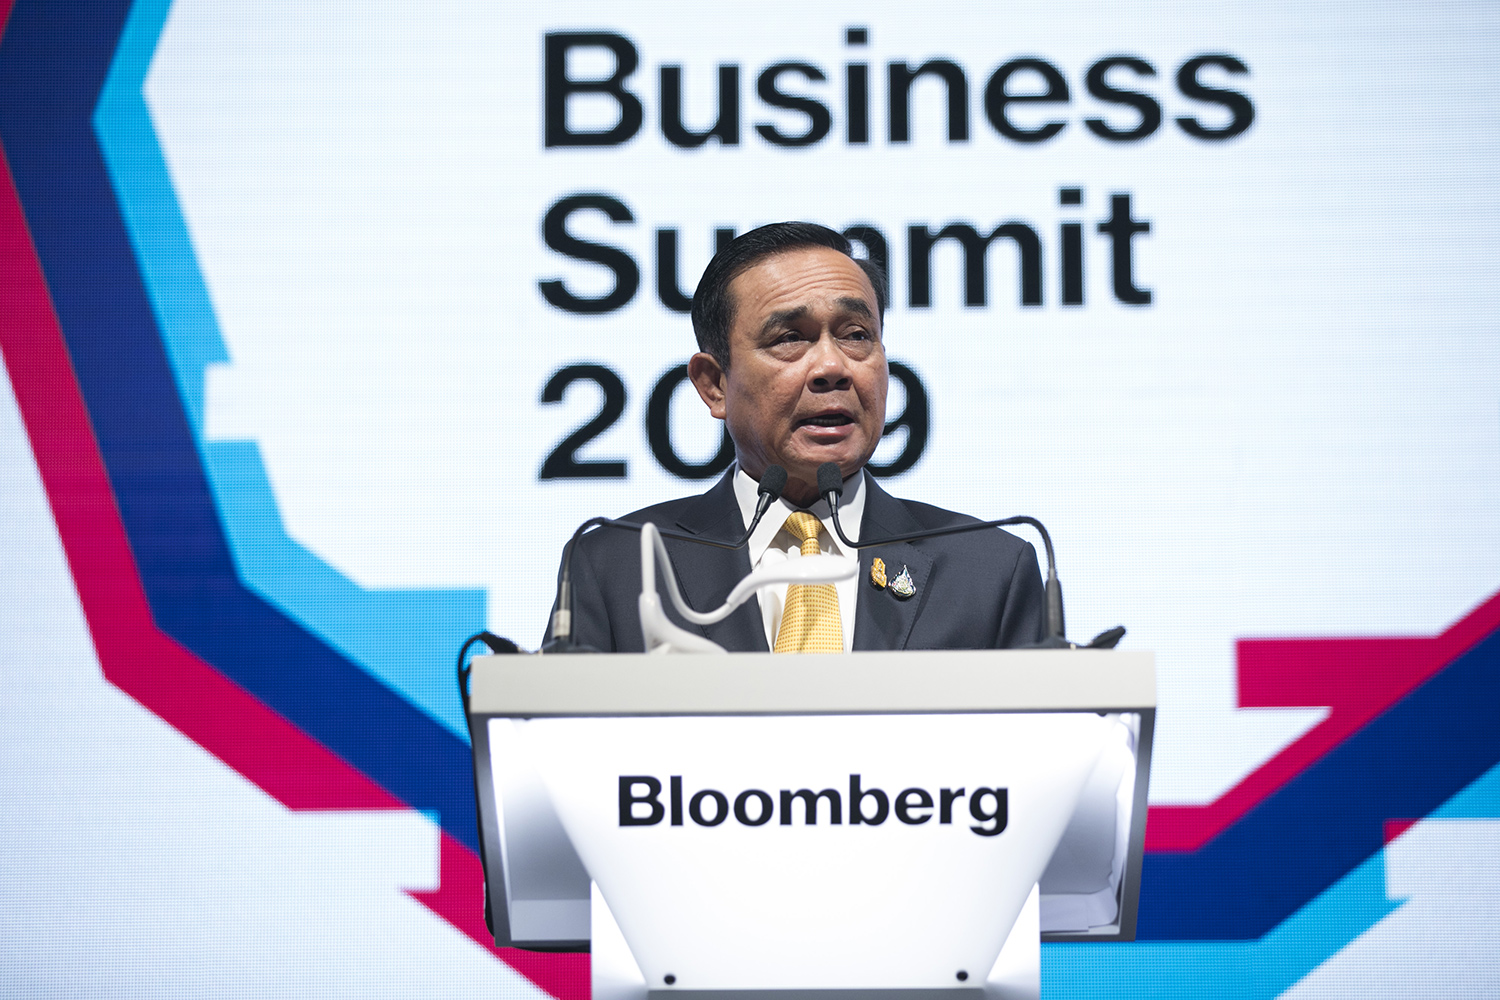 Prime Minister Prayut Chan-o-cha speaks during the Bloomberg Asean Business Summit in Bangkok on Friday. (Bloomberg photo)